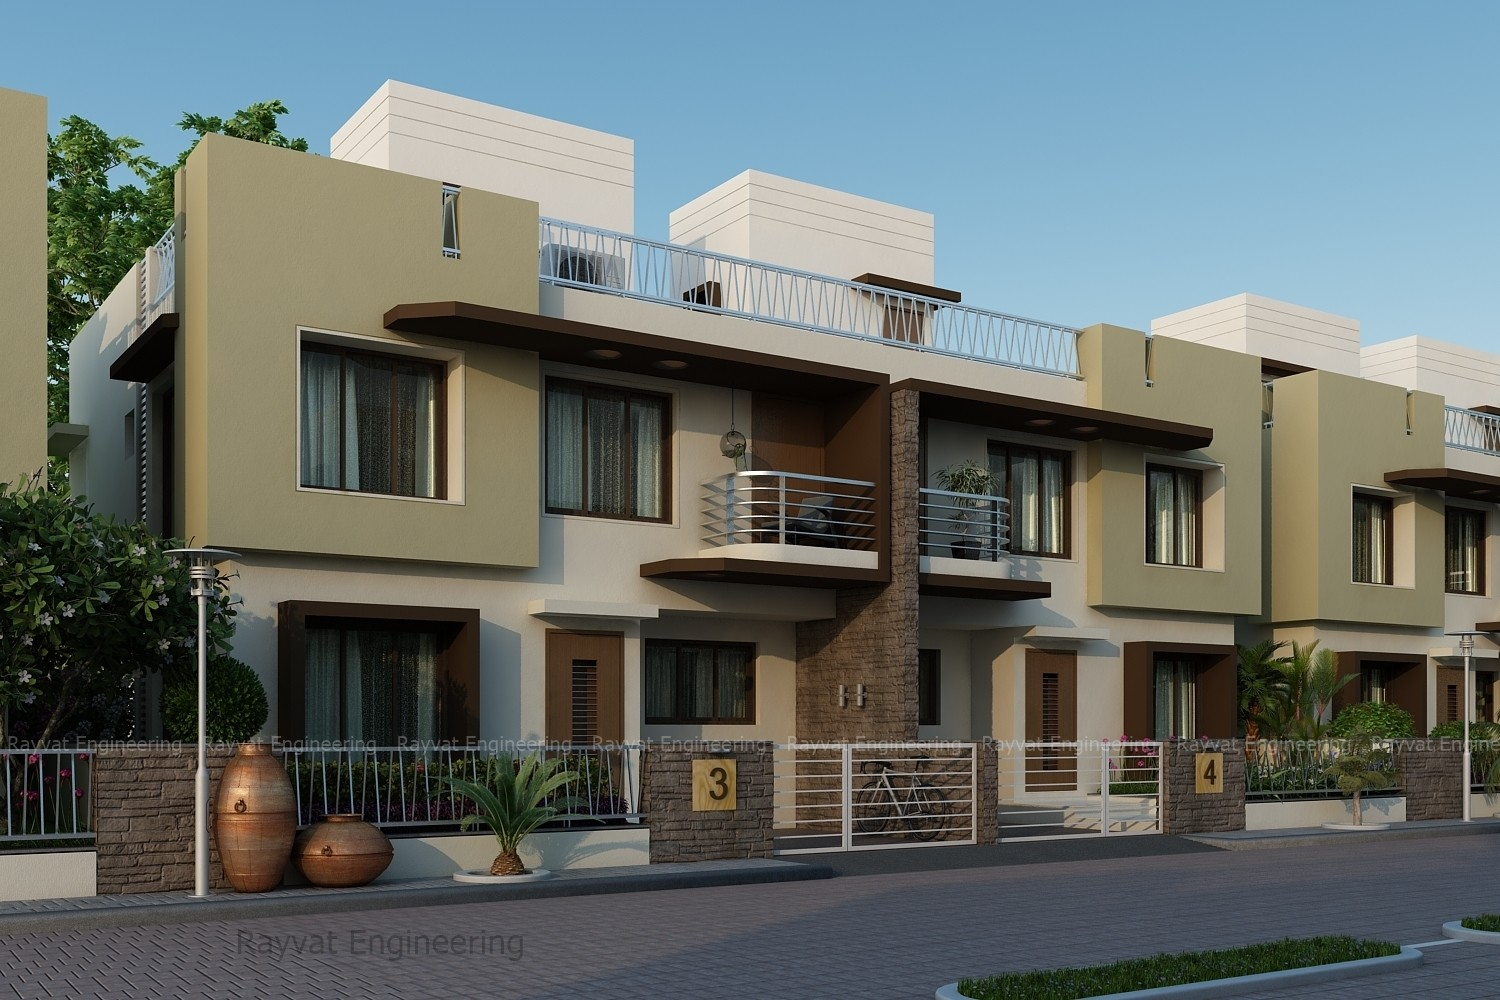 Rayvat Engineering - 3D Exterior Bungalow and Apartments Design